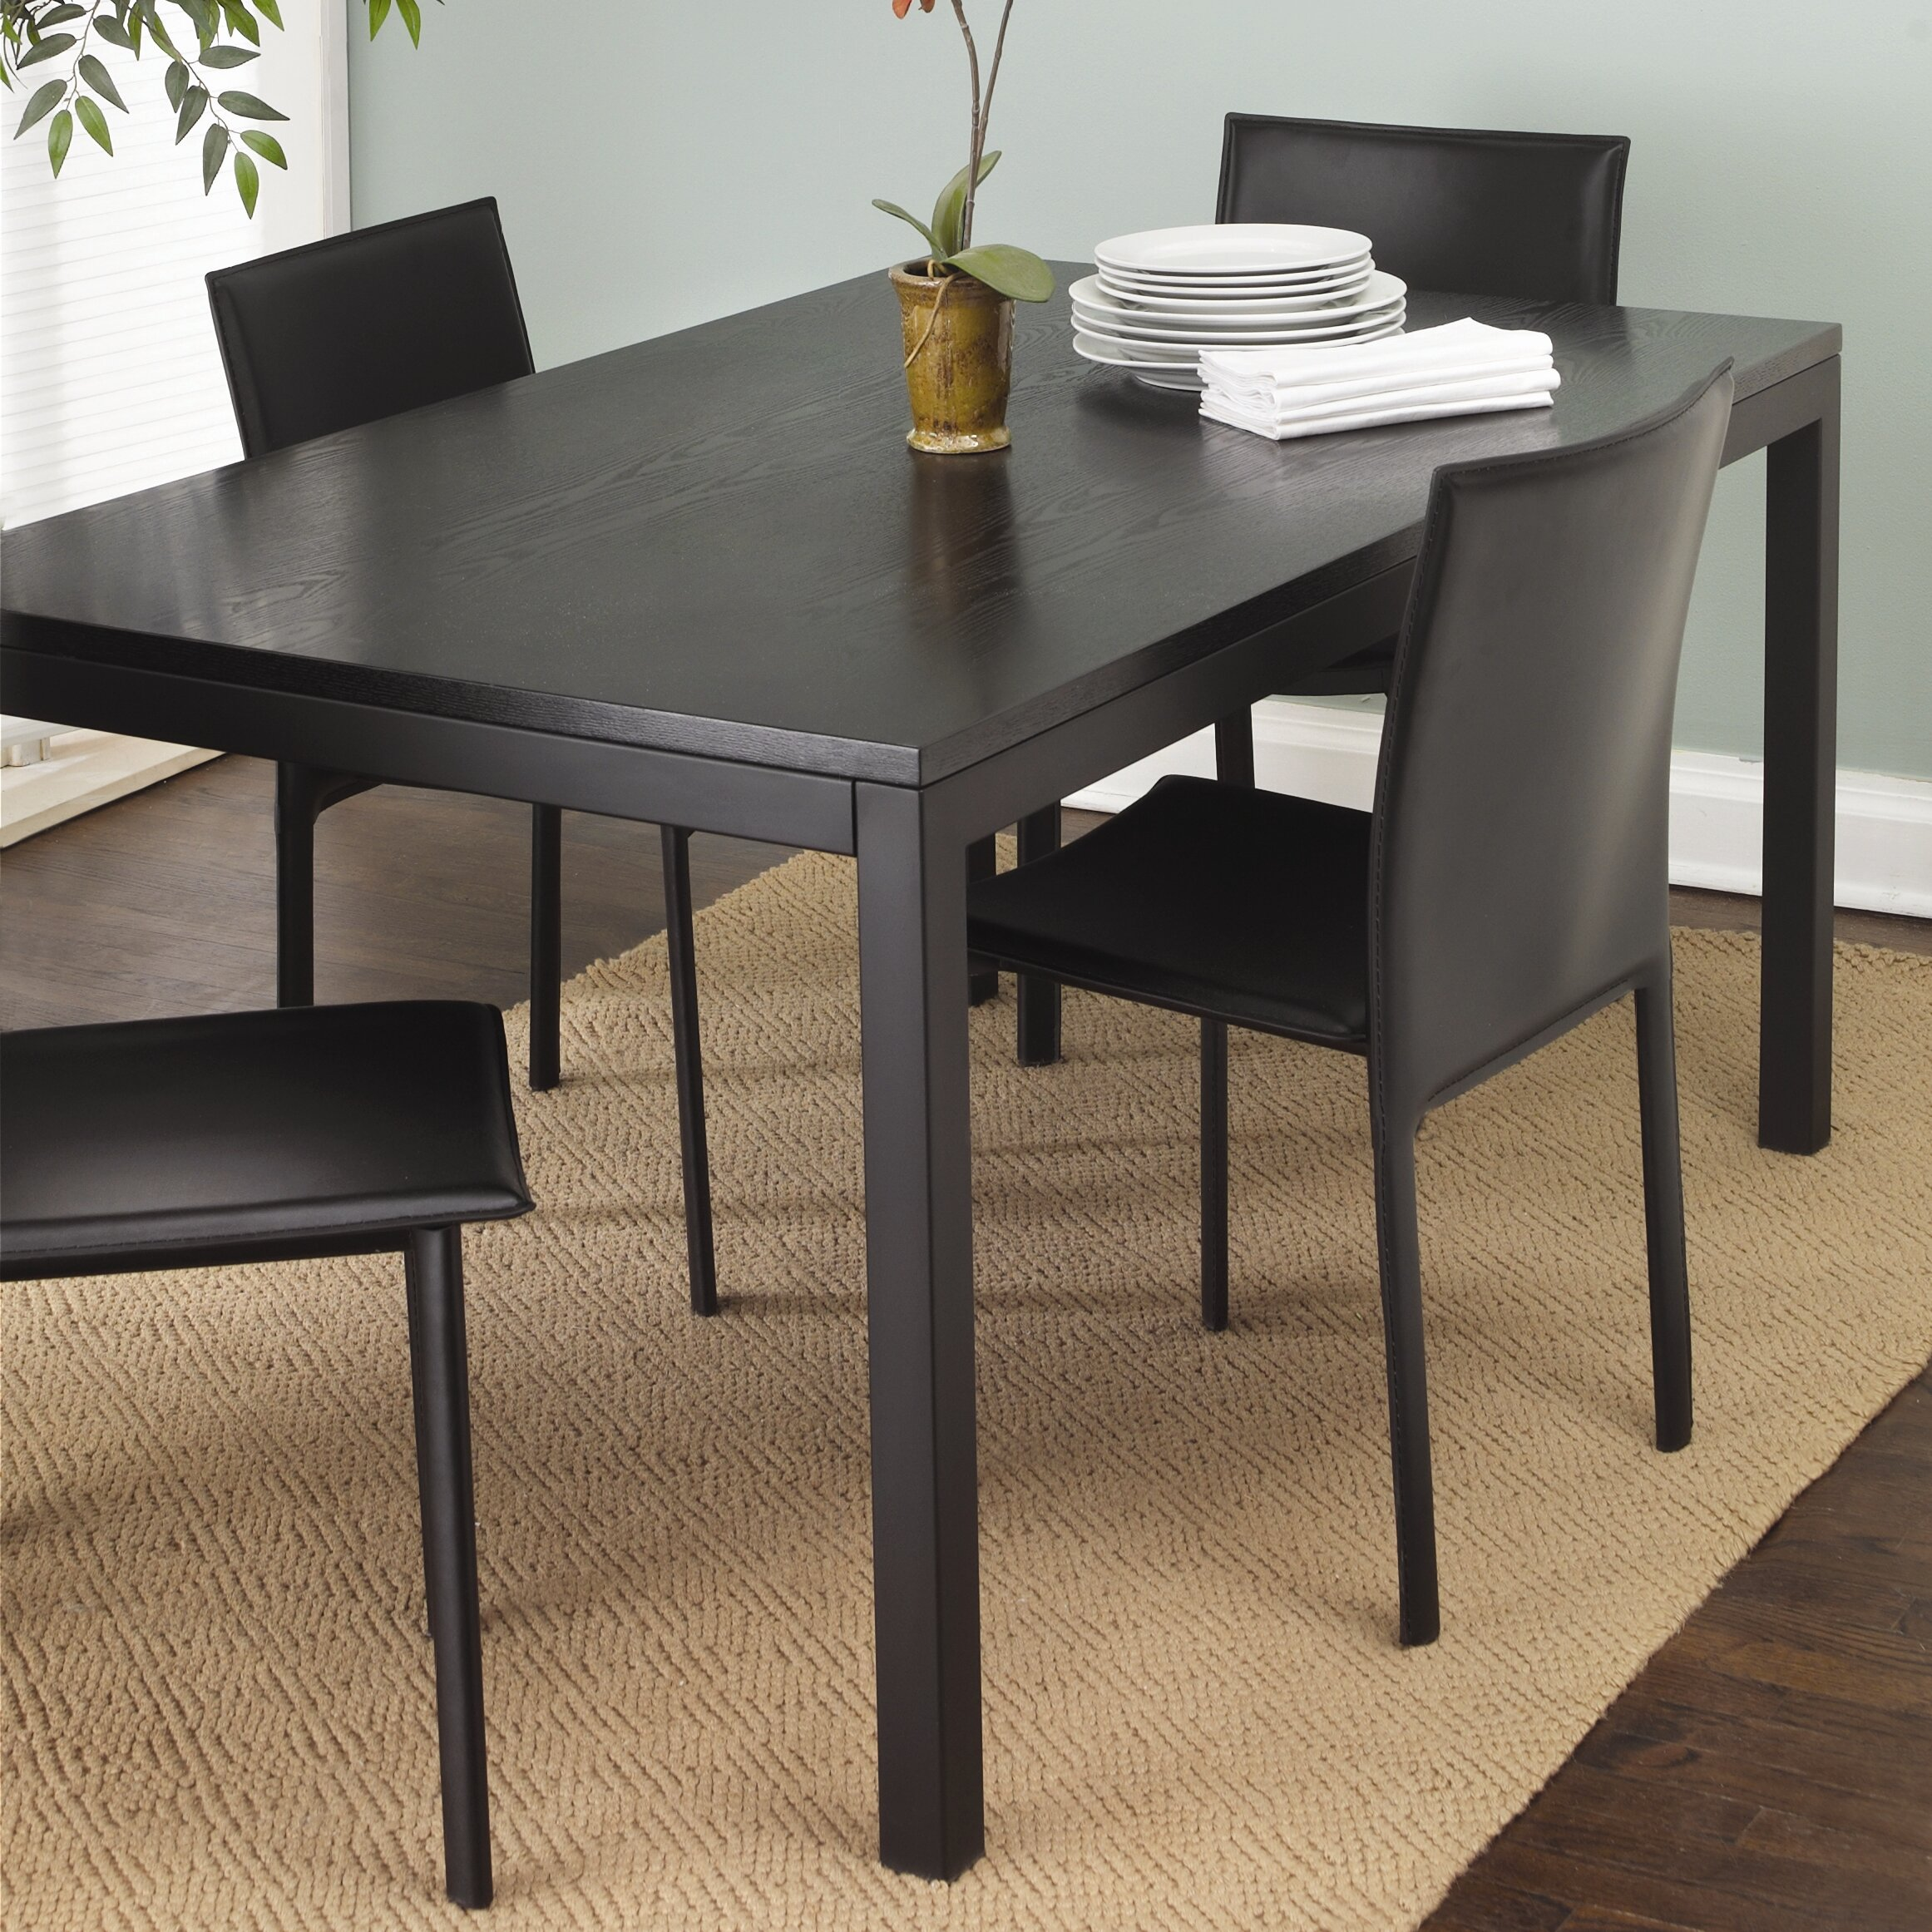 dining furniture 6 seat kitchen and dining tables tfg sku tfg1292